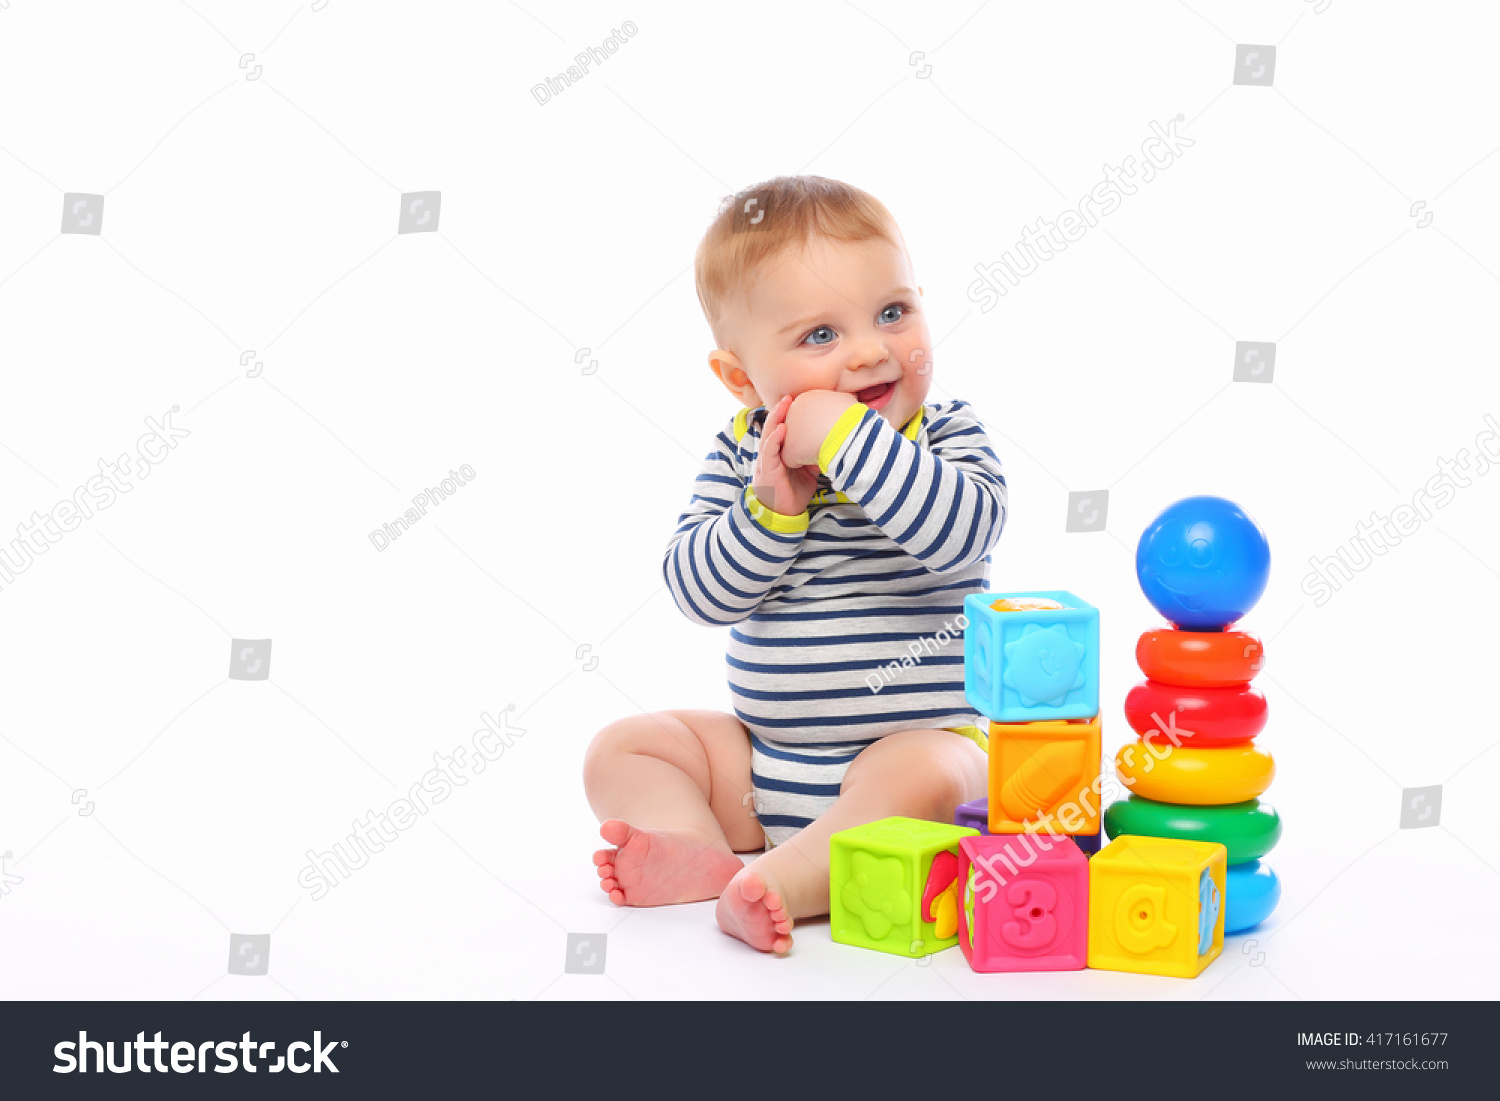 cute babe plays toys stock photo 417161677 - shutterstock